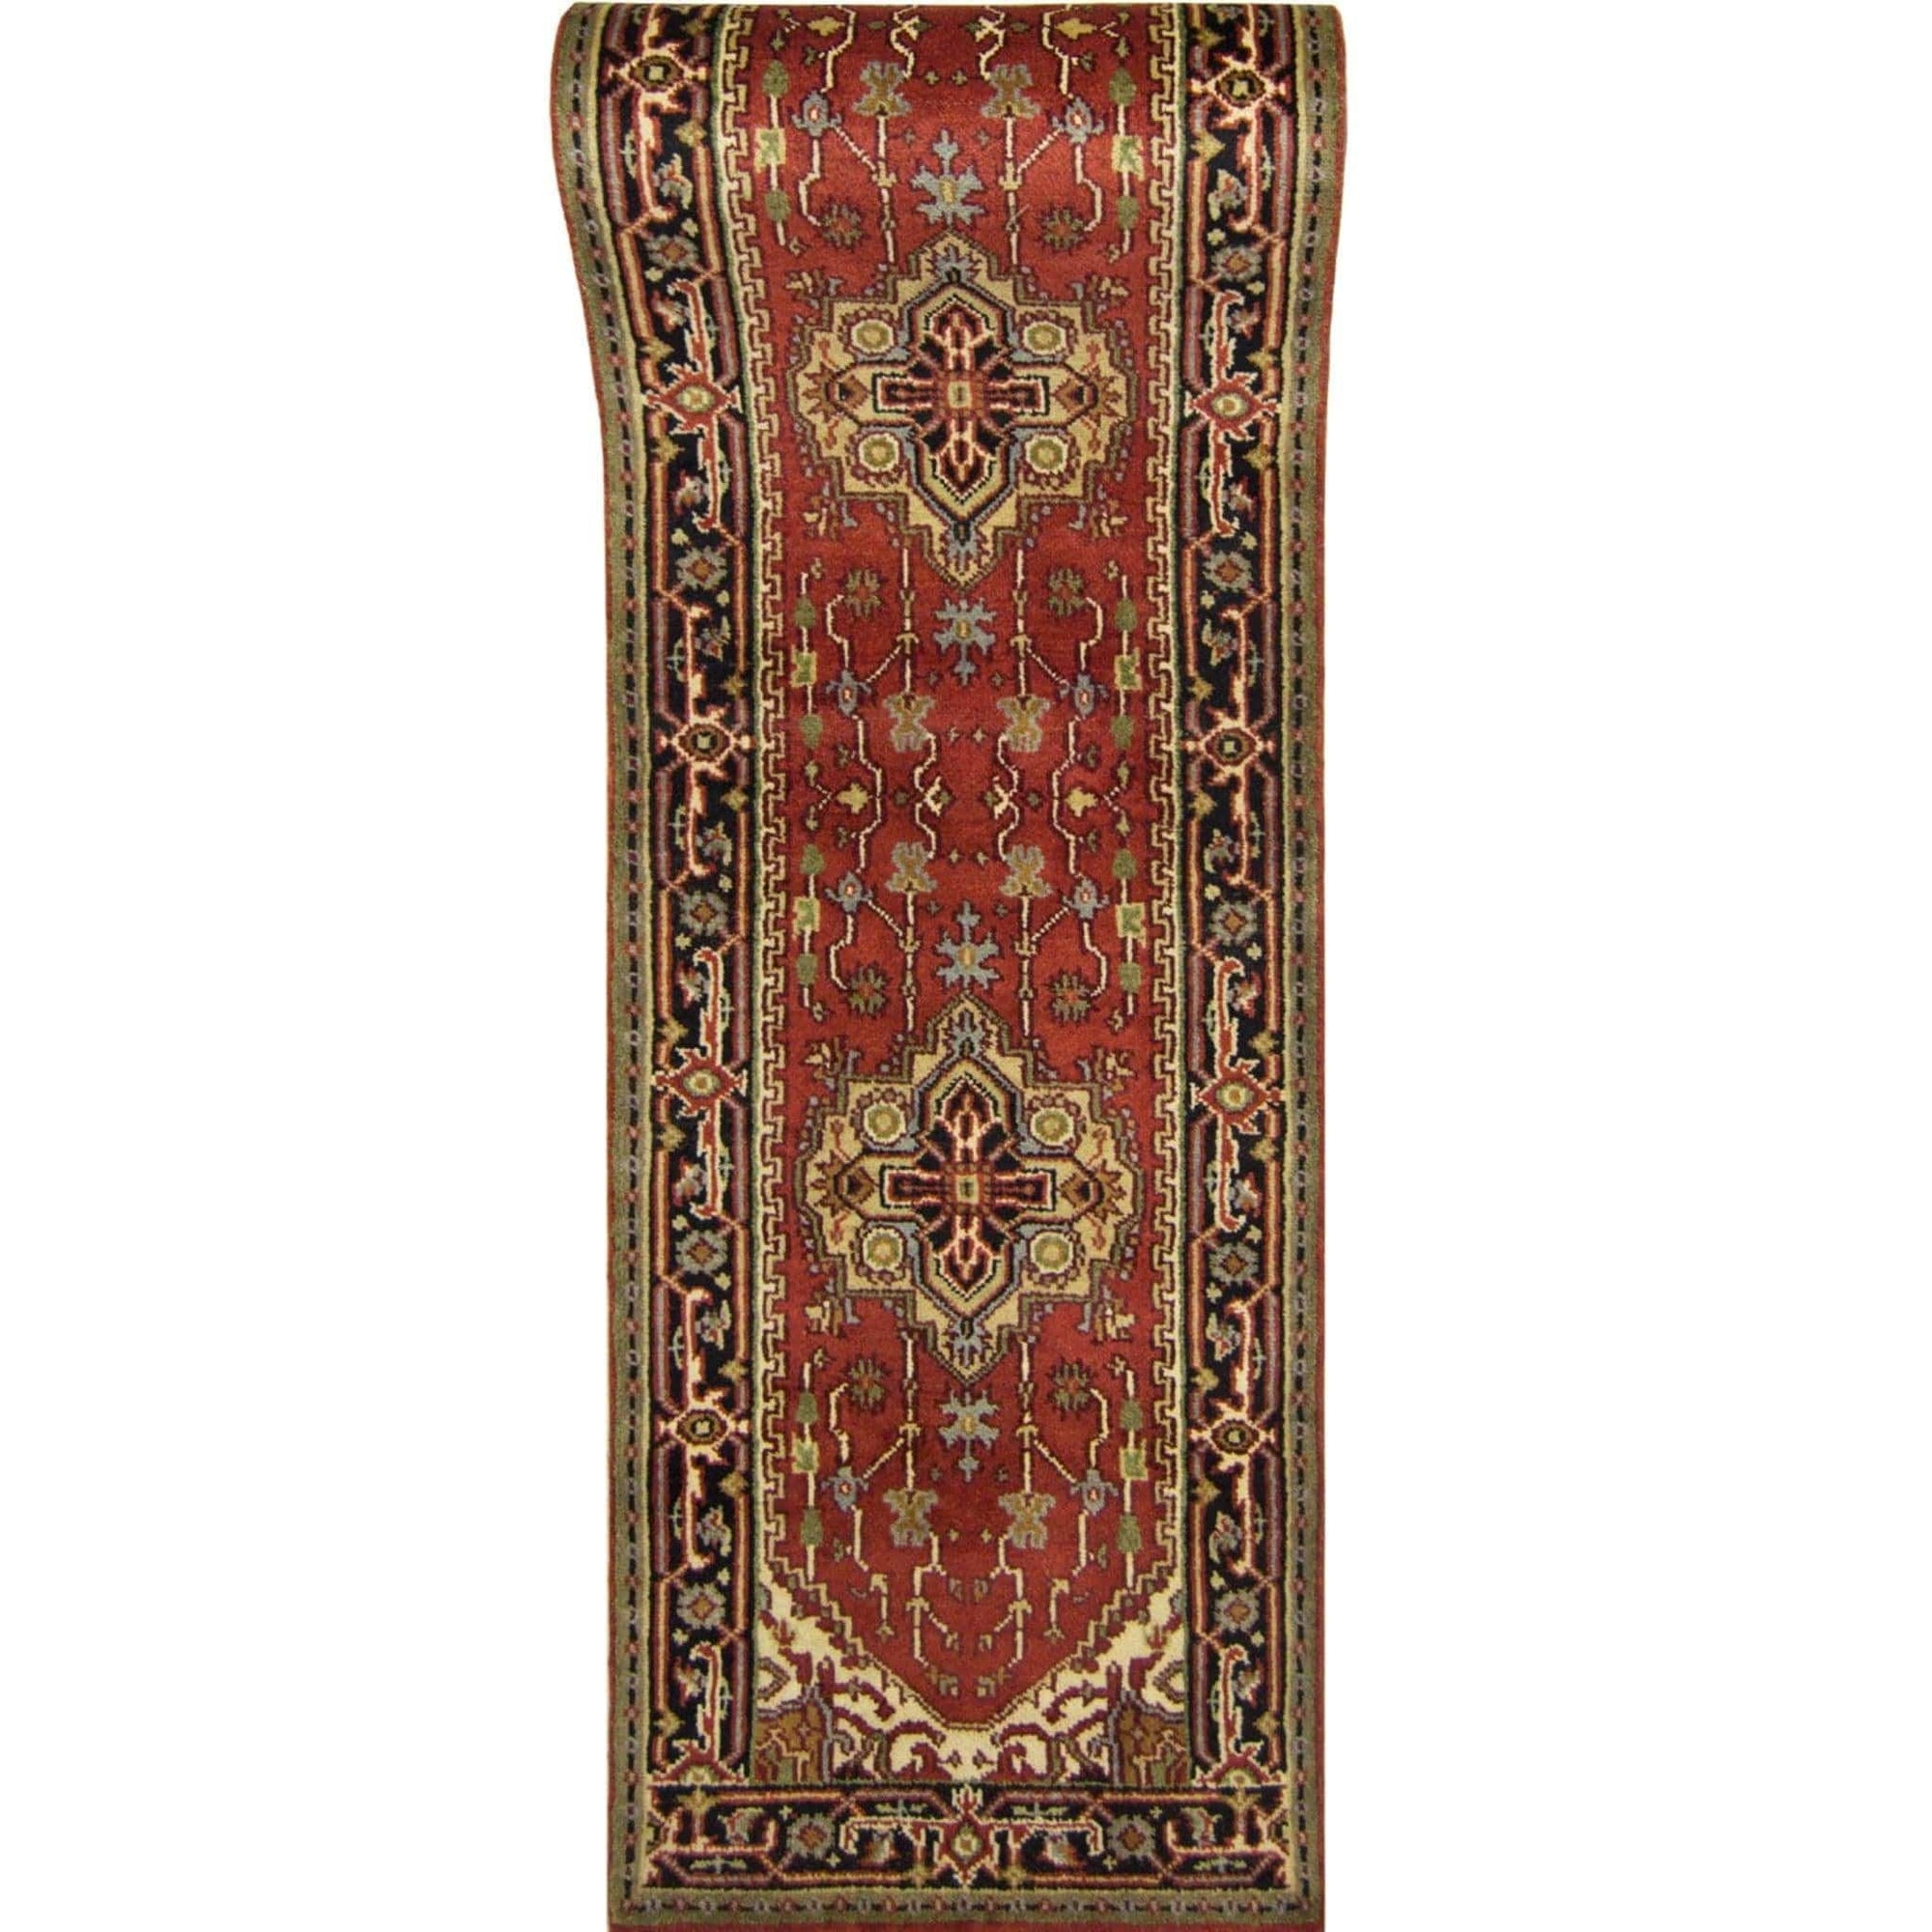 Heriz Persian-Rug | House-of-Haghi | NewMarket | Auckland | NZ | Handmade Persian Rugs | Hand Knotted Persian Rugs